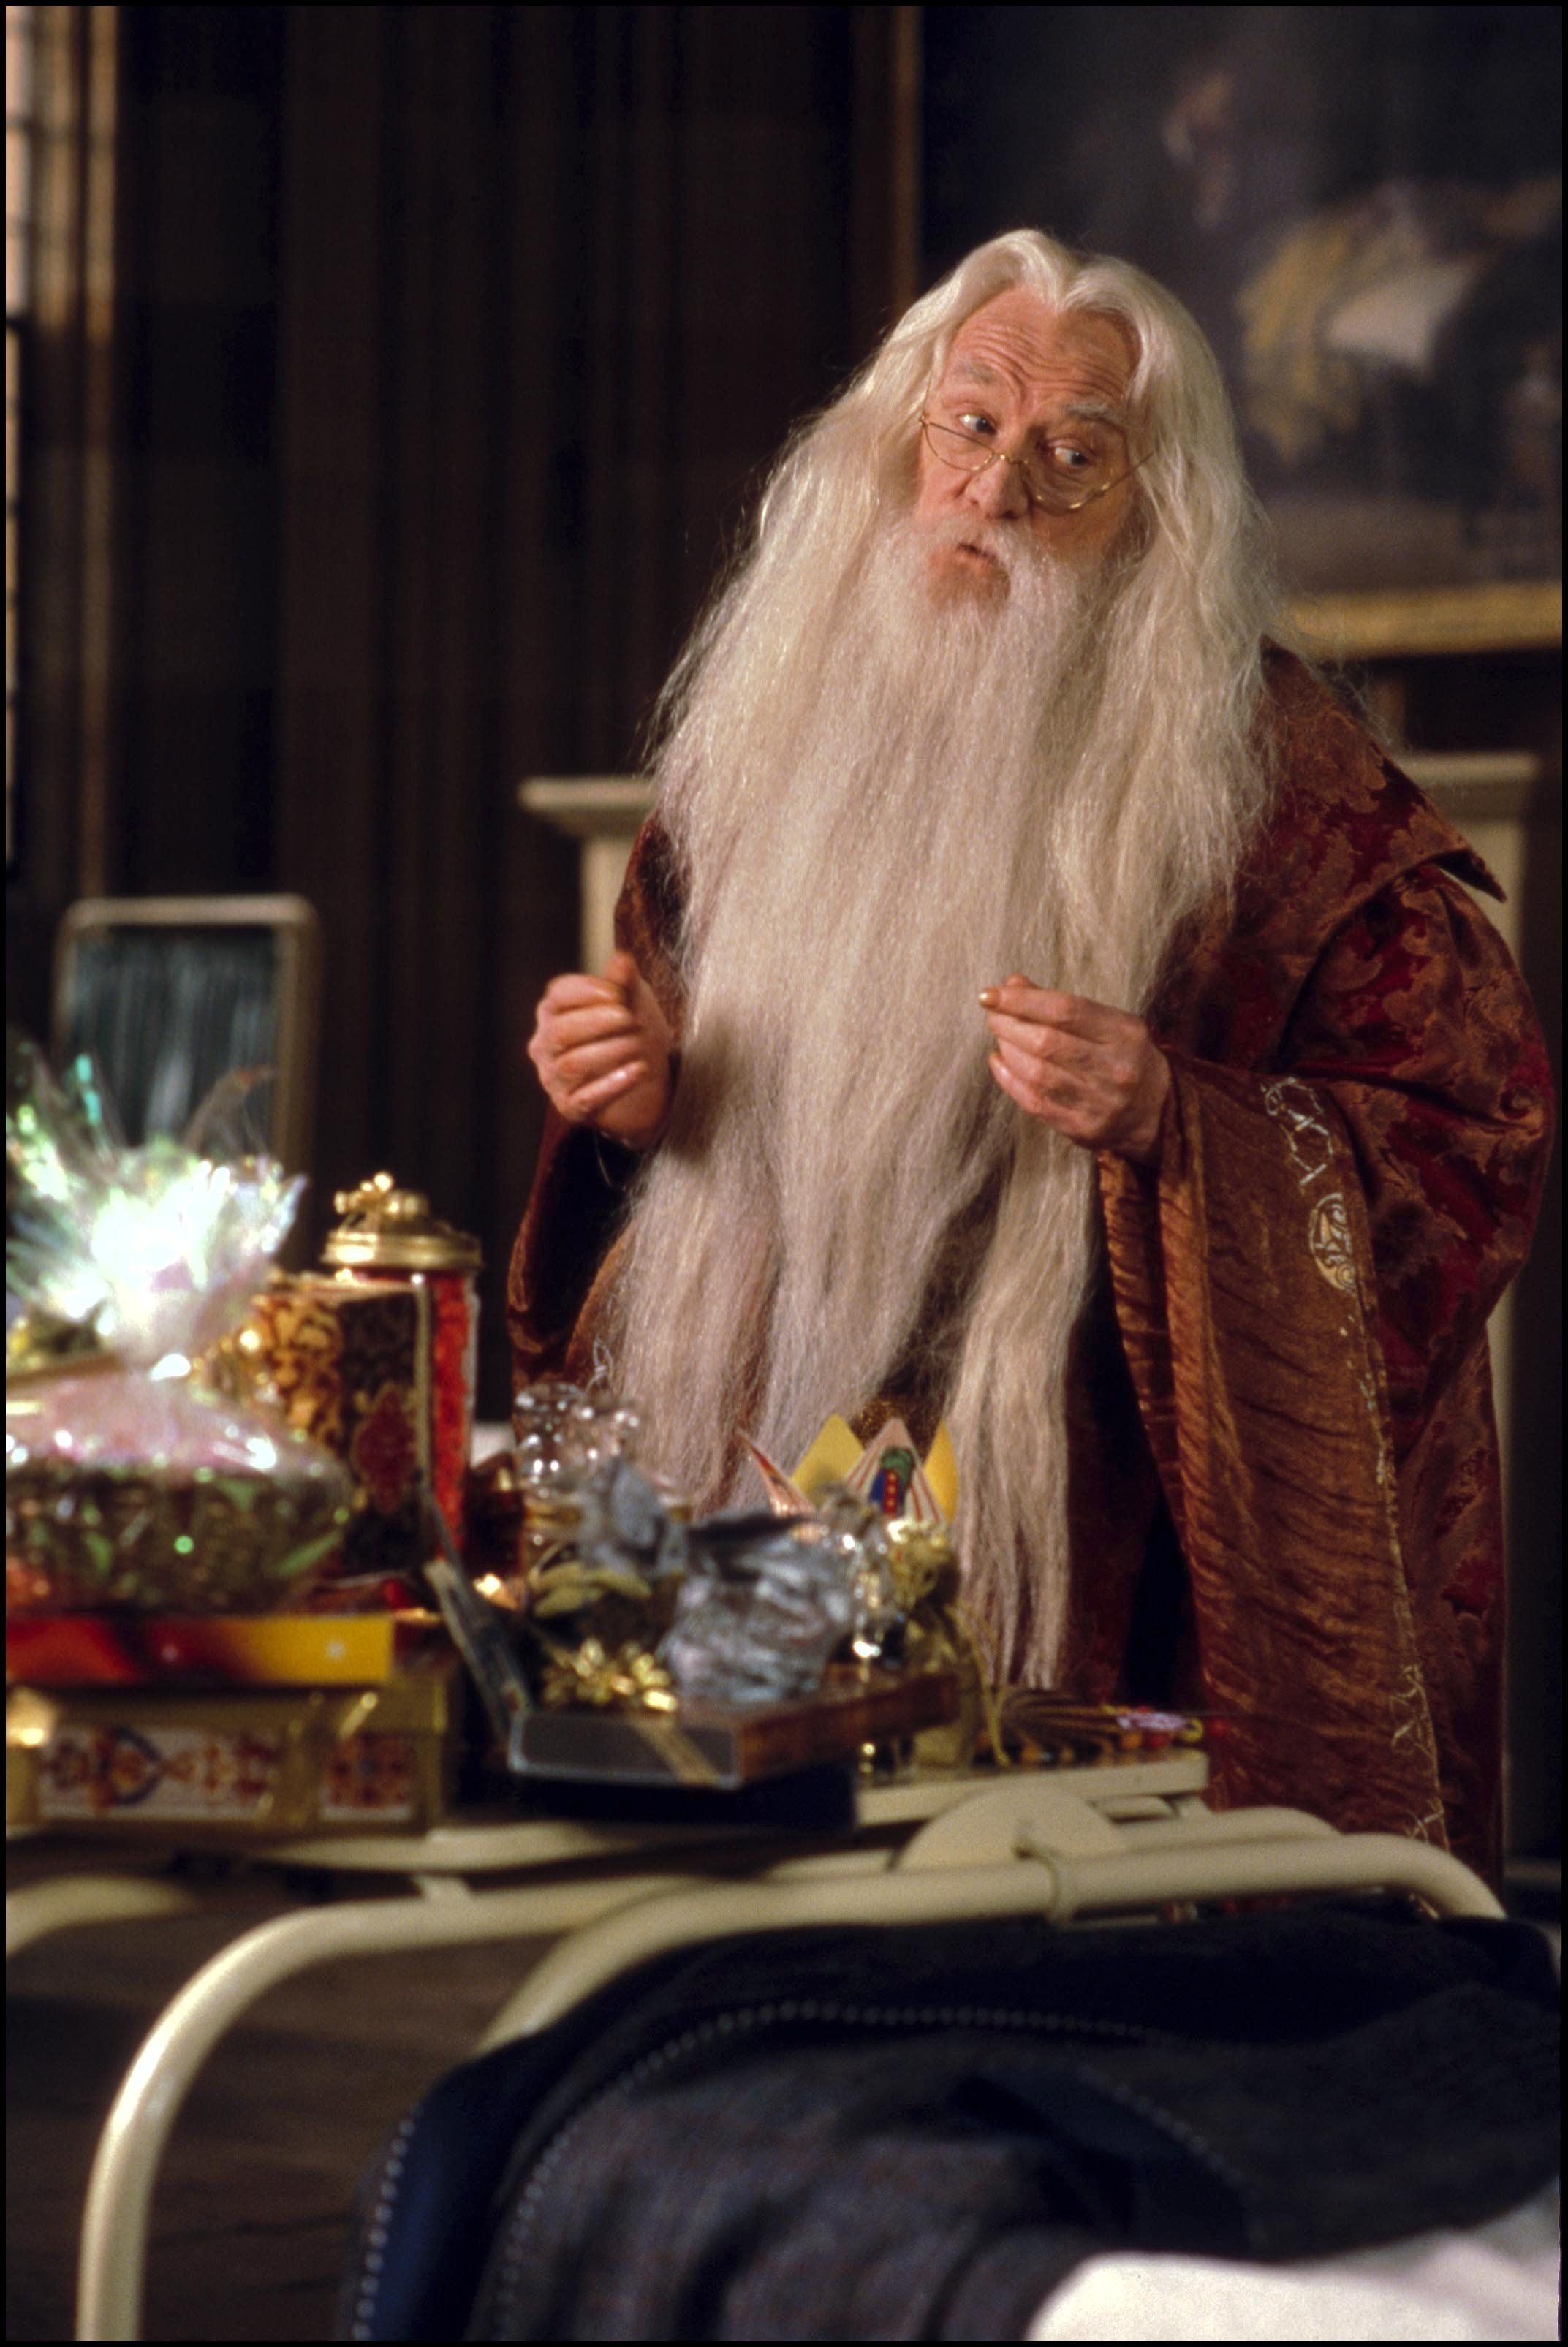 UNITED STATES - NOVEMBER 01:  Film 'Harry Potter and the philosopher's stone' In United States In November, 2001-Professor Dumbledore (Richard Harris).  (Photo by 7831/Gamma-Rapho via Getty Images)